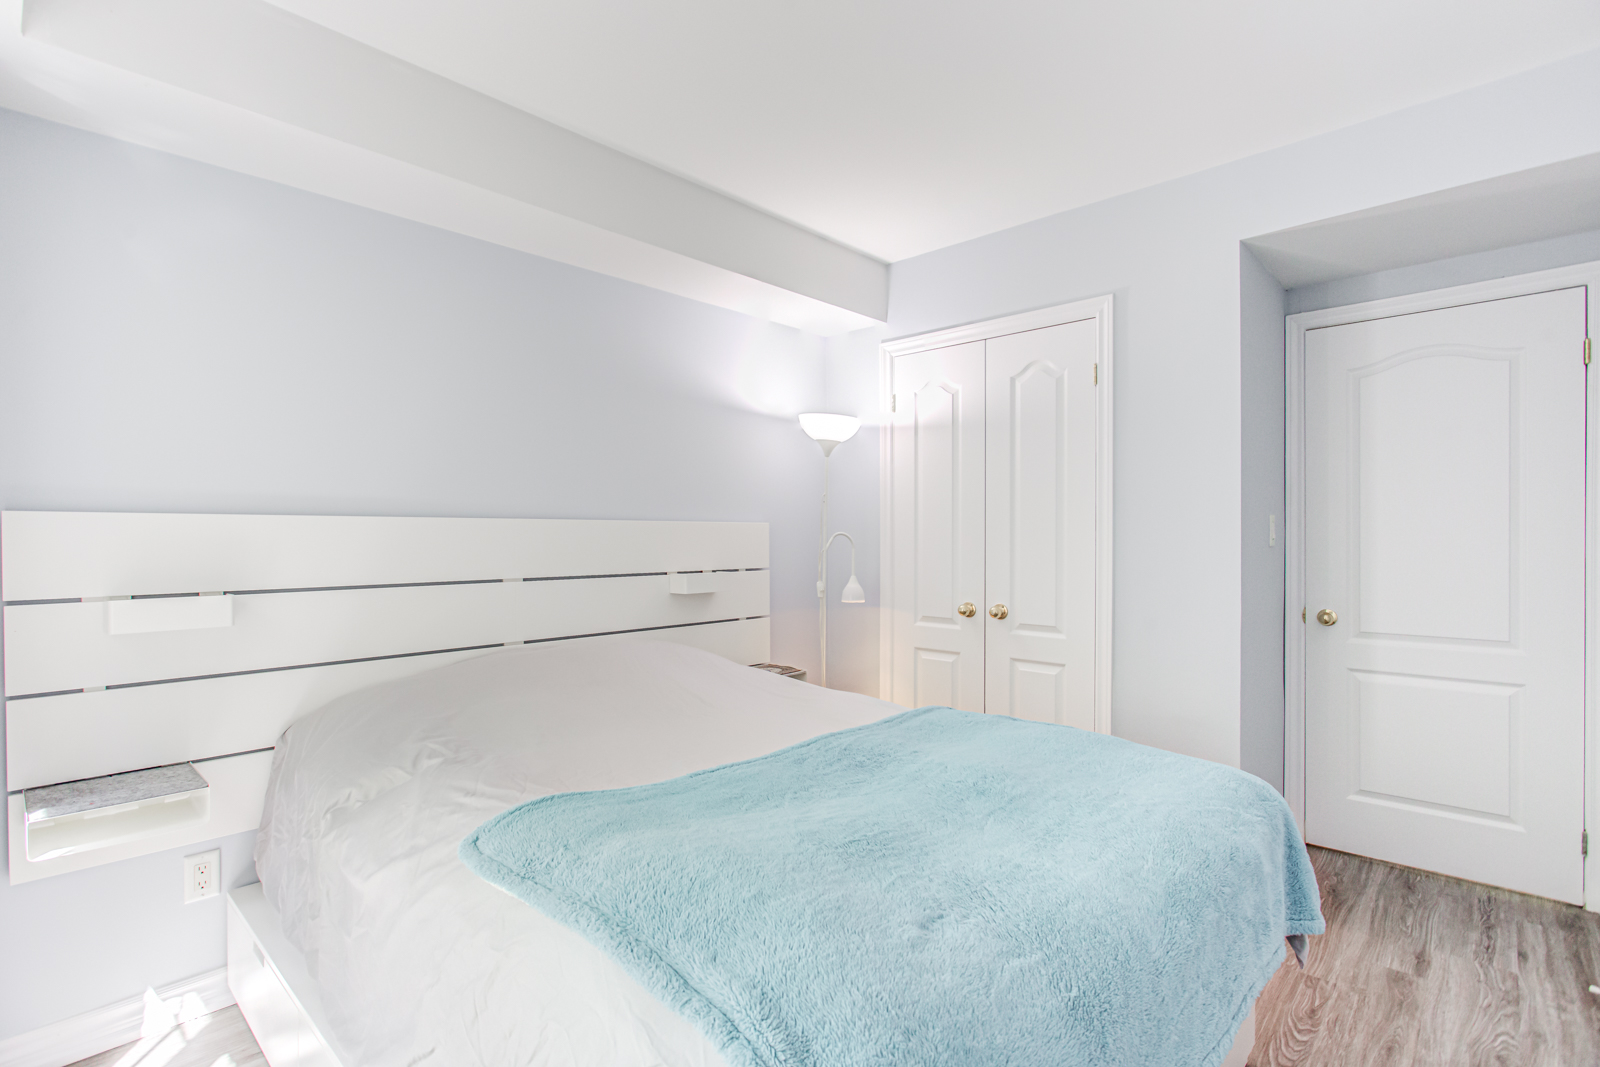 Alternate angle of master bedroom showing mostly white and gray color scheme.